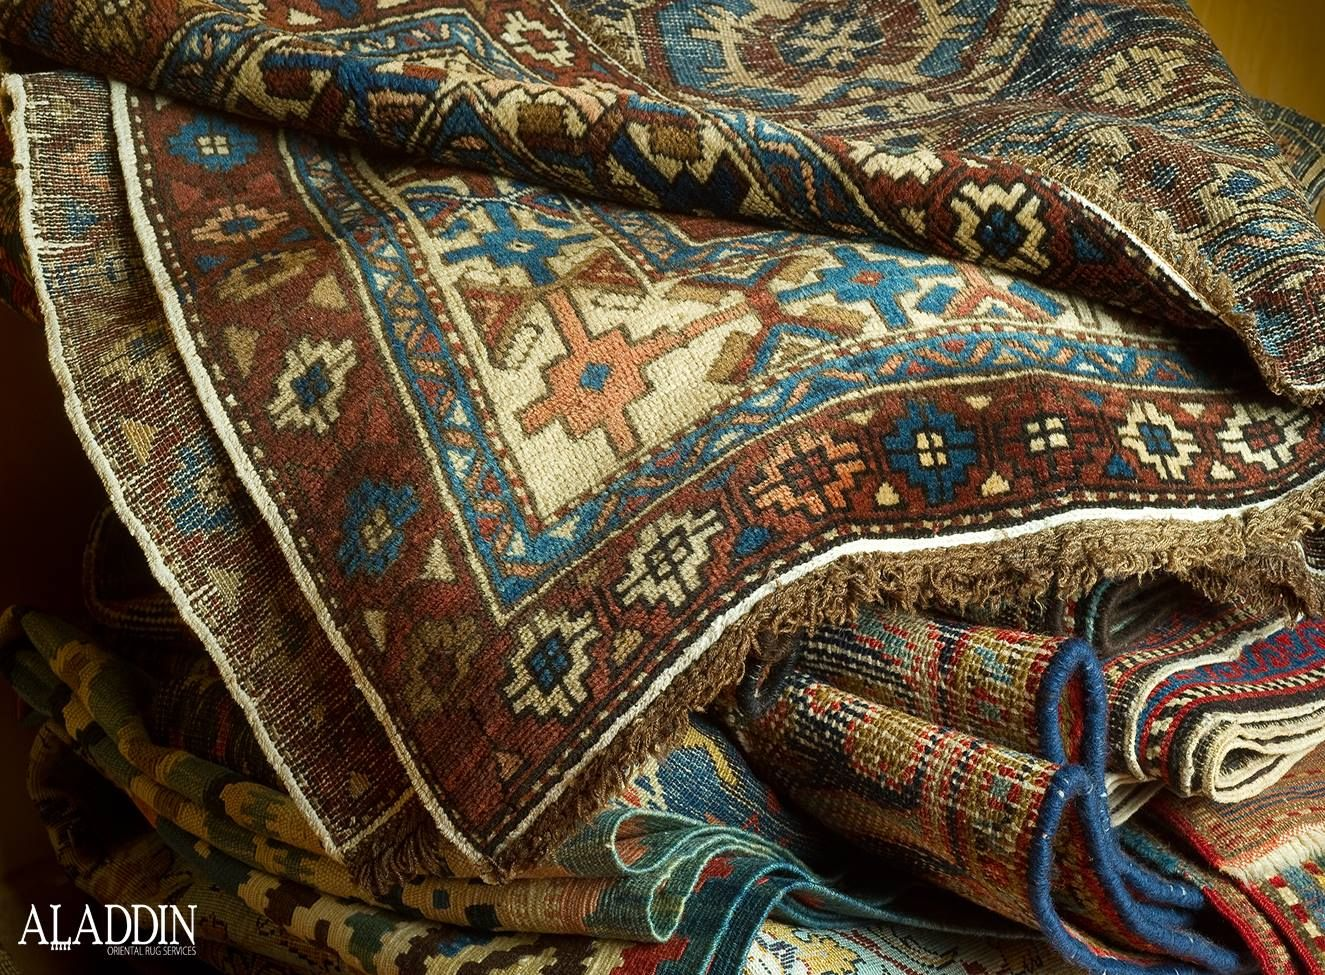 Aladdin Rug Services has been providing quality and reliable carpet and rug cleaning services. We're New Jersey's leading carpet and rug cleaning company and guarantee your satisfaction each and every time!  (732) 456-5511 #RugCleaning #OrientalRugCleaning #OrientalRugRepair #OrientalRugDyeing #OrientalRugRestoration